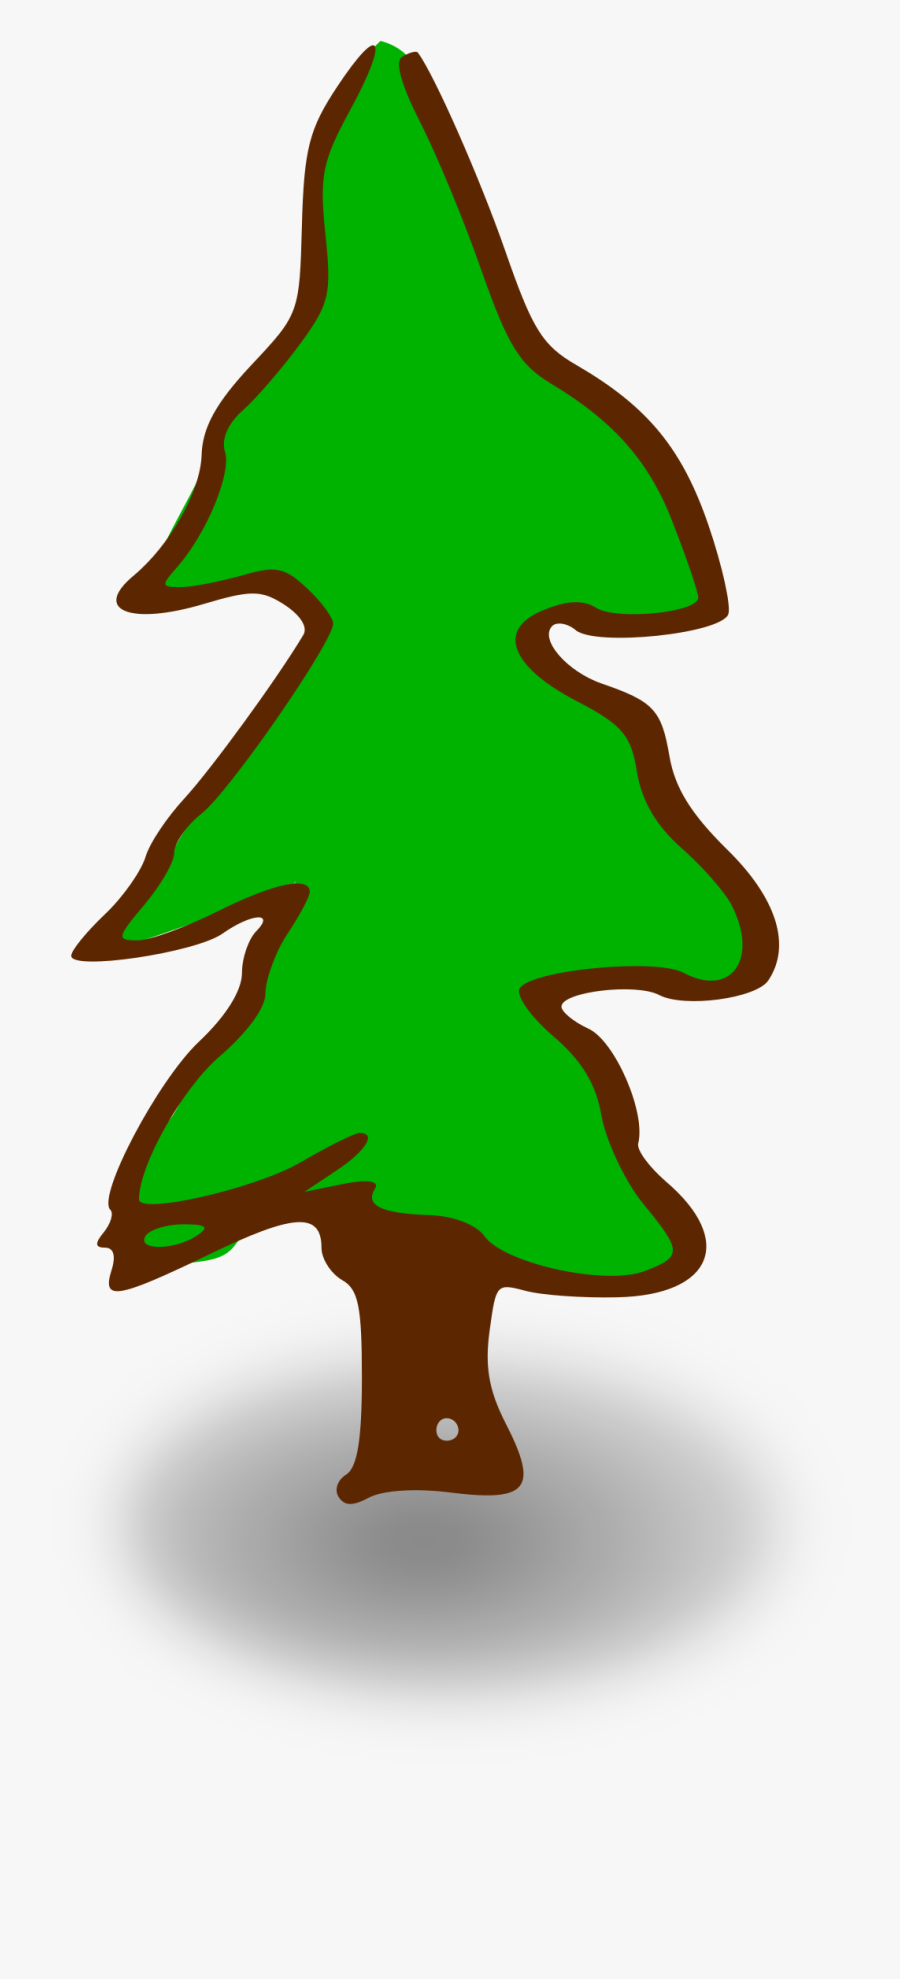 Clip Library Download Download Computer Icons Tree - Cartoon Christmas Tree With Transparent Background, Transparent Clipart